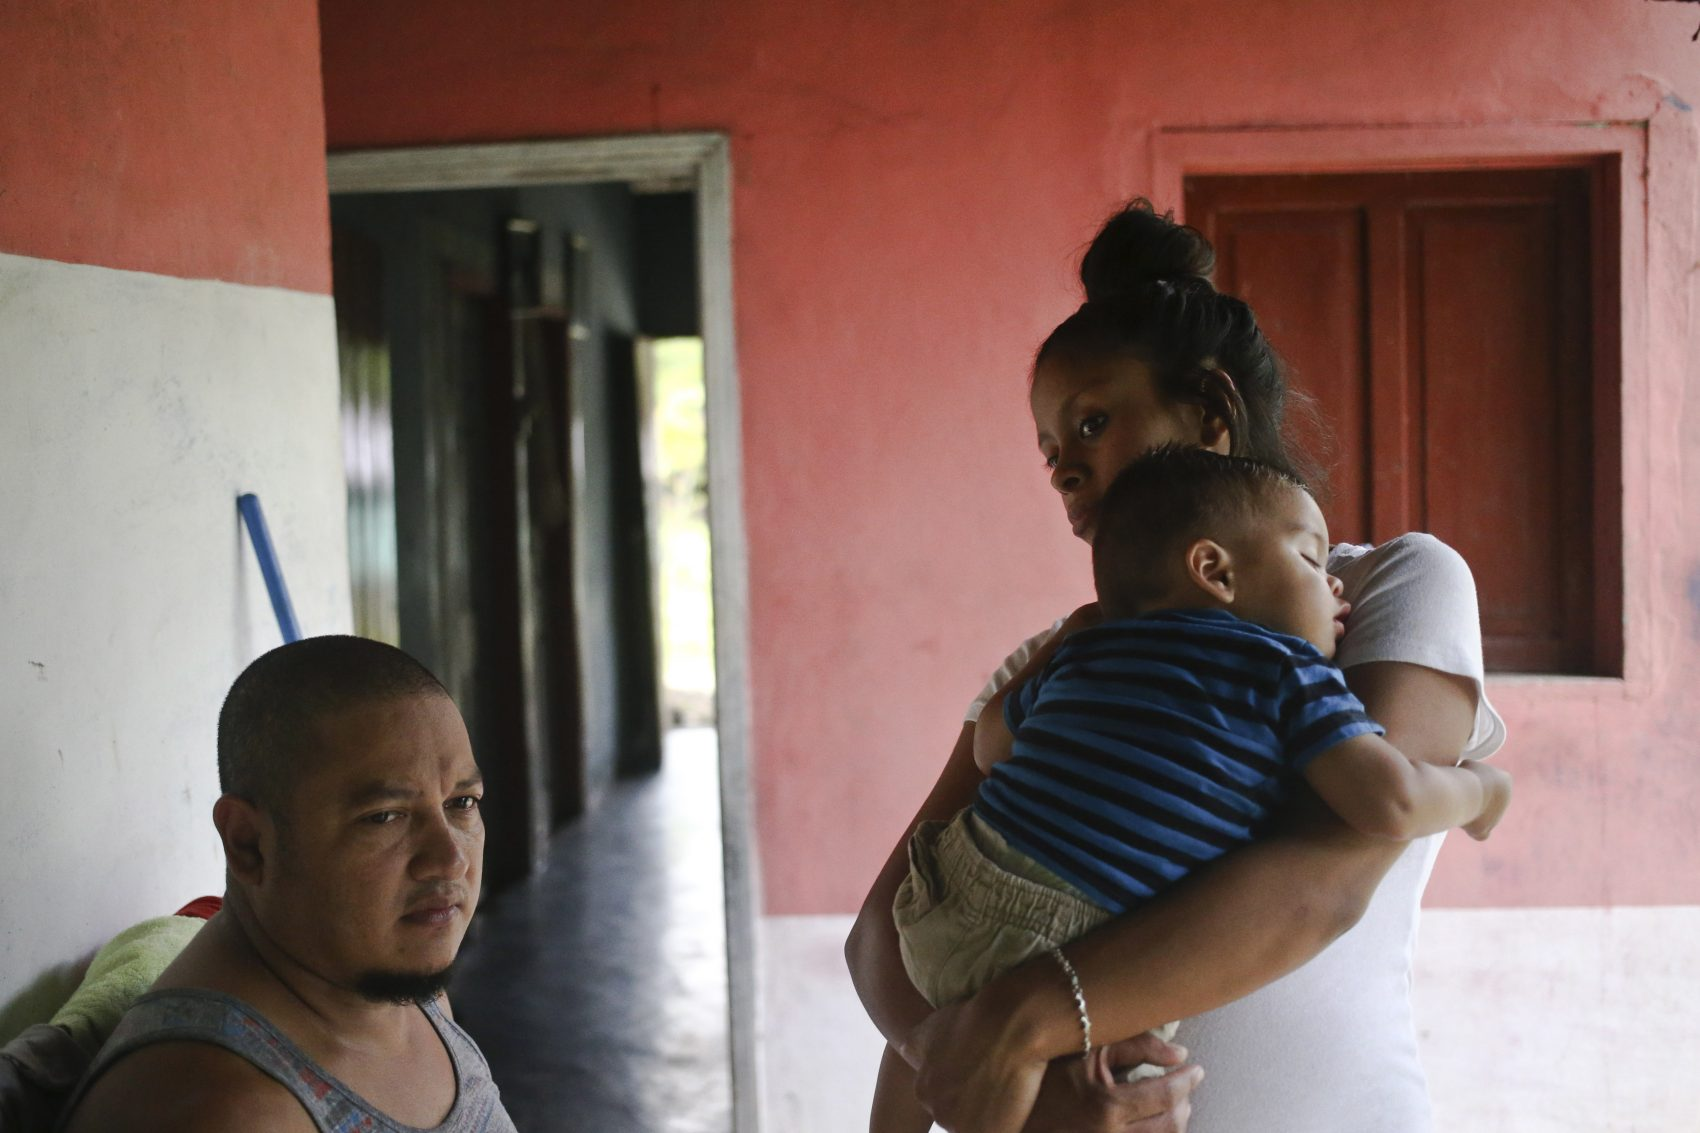 Adalicia Montecinos cradles her year-old son Johan, who became a poster child for the U.S. policy of separating immigrants and their children, during the first full day back with his family, in La Libertad, Honduras, Saturday, July, 21, 2018. Johan arrived in San Pedro Sula and was reunited with his parents on a government bus. Captured by Border Patrol agents in March, Johan's father was deported and the then 10-month-old remained at an Arizona shelter. Pictured at left is Johan's father Rolando Bueso Castillo. (Esteban Felix/AP)